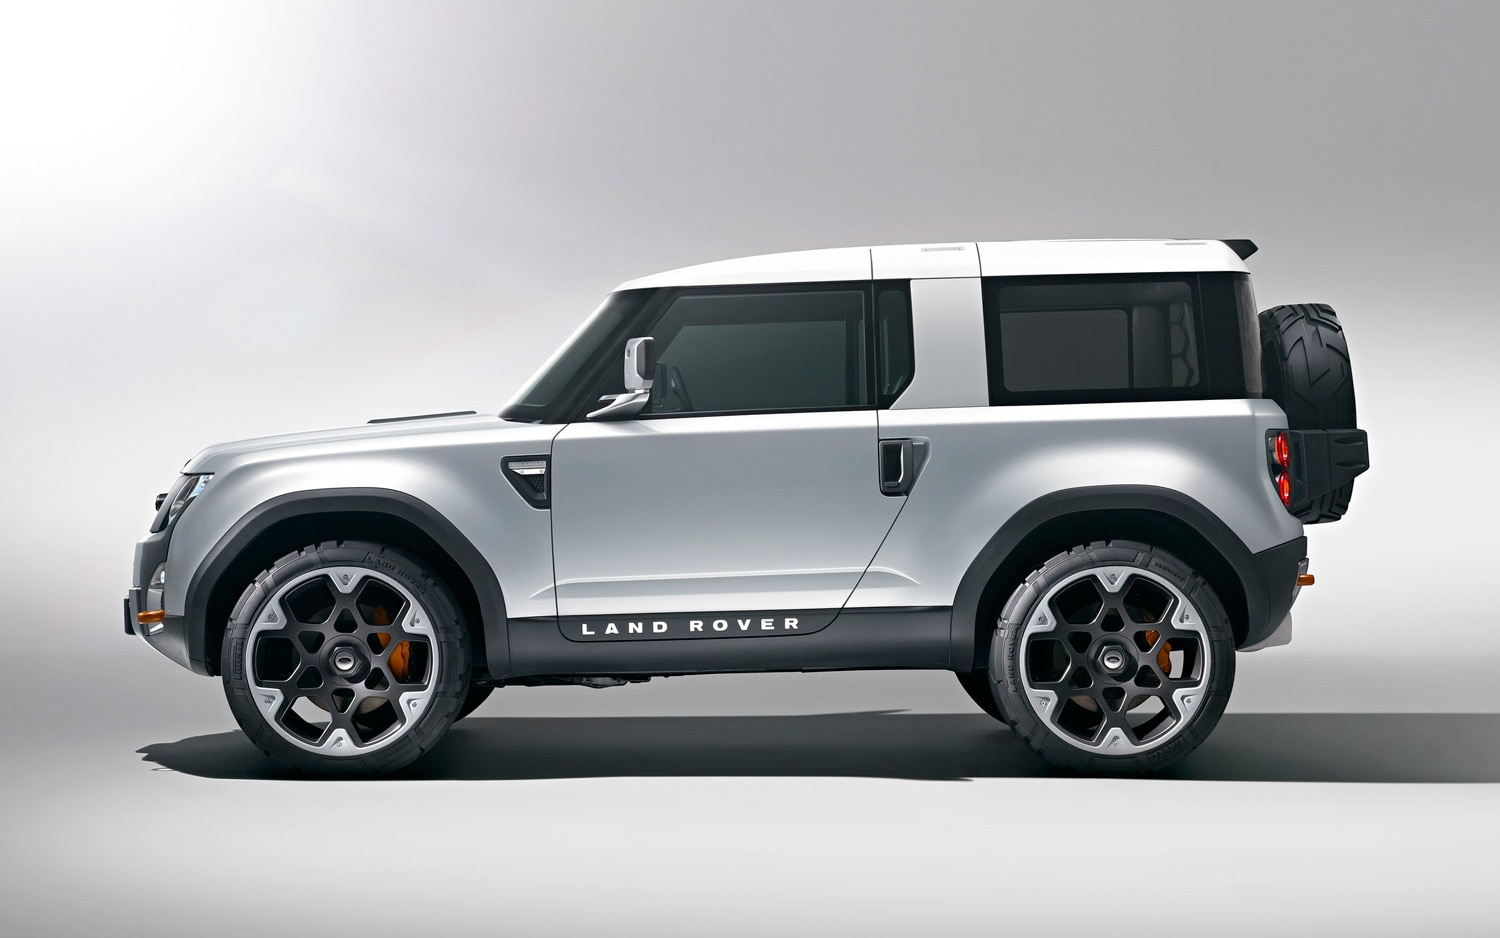 2011 Land Rover Defender DC100 Concept Side View1